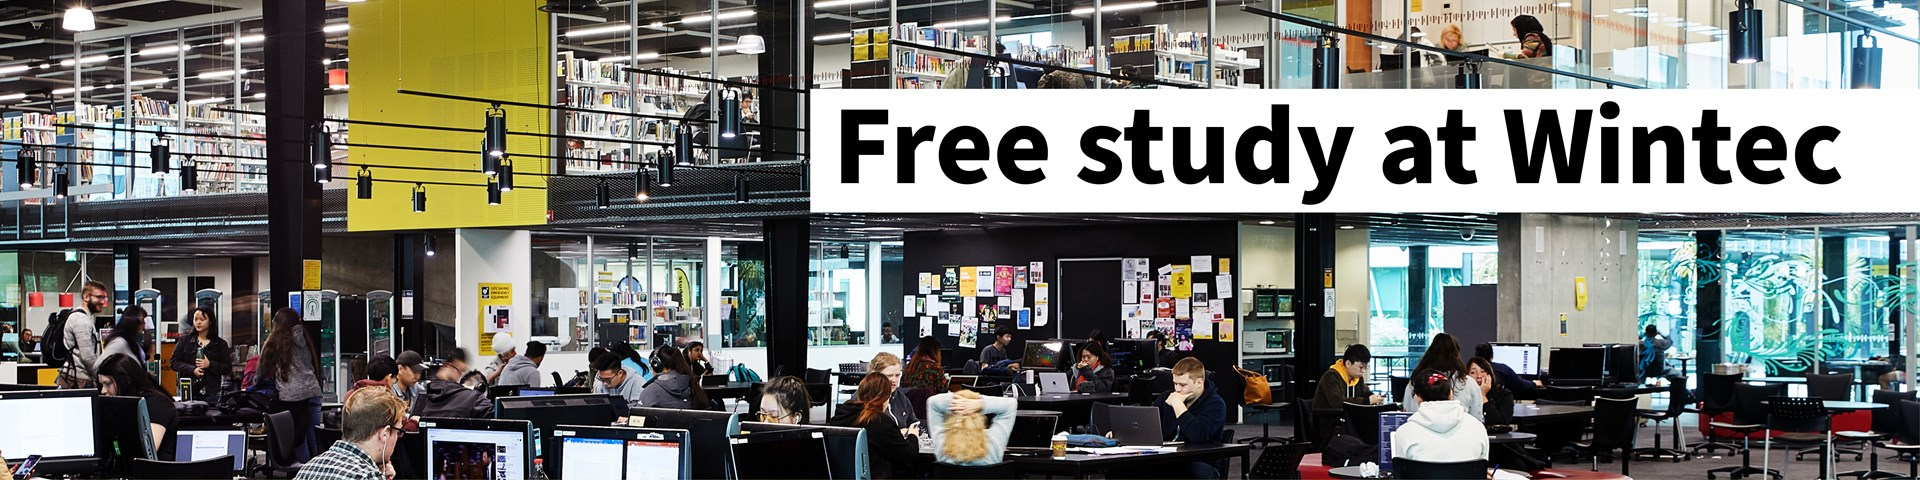 Free study at Wintec